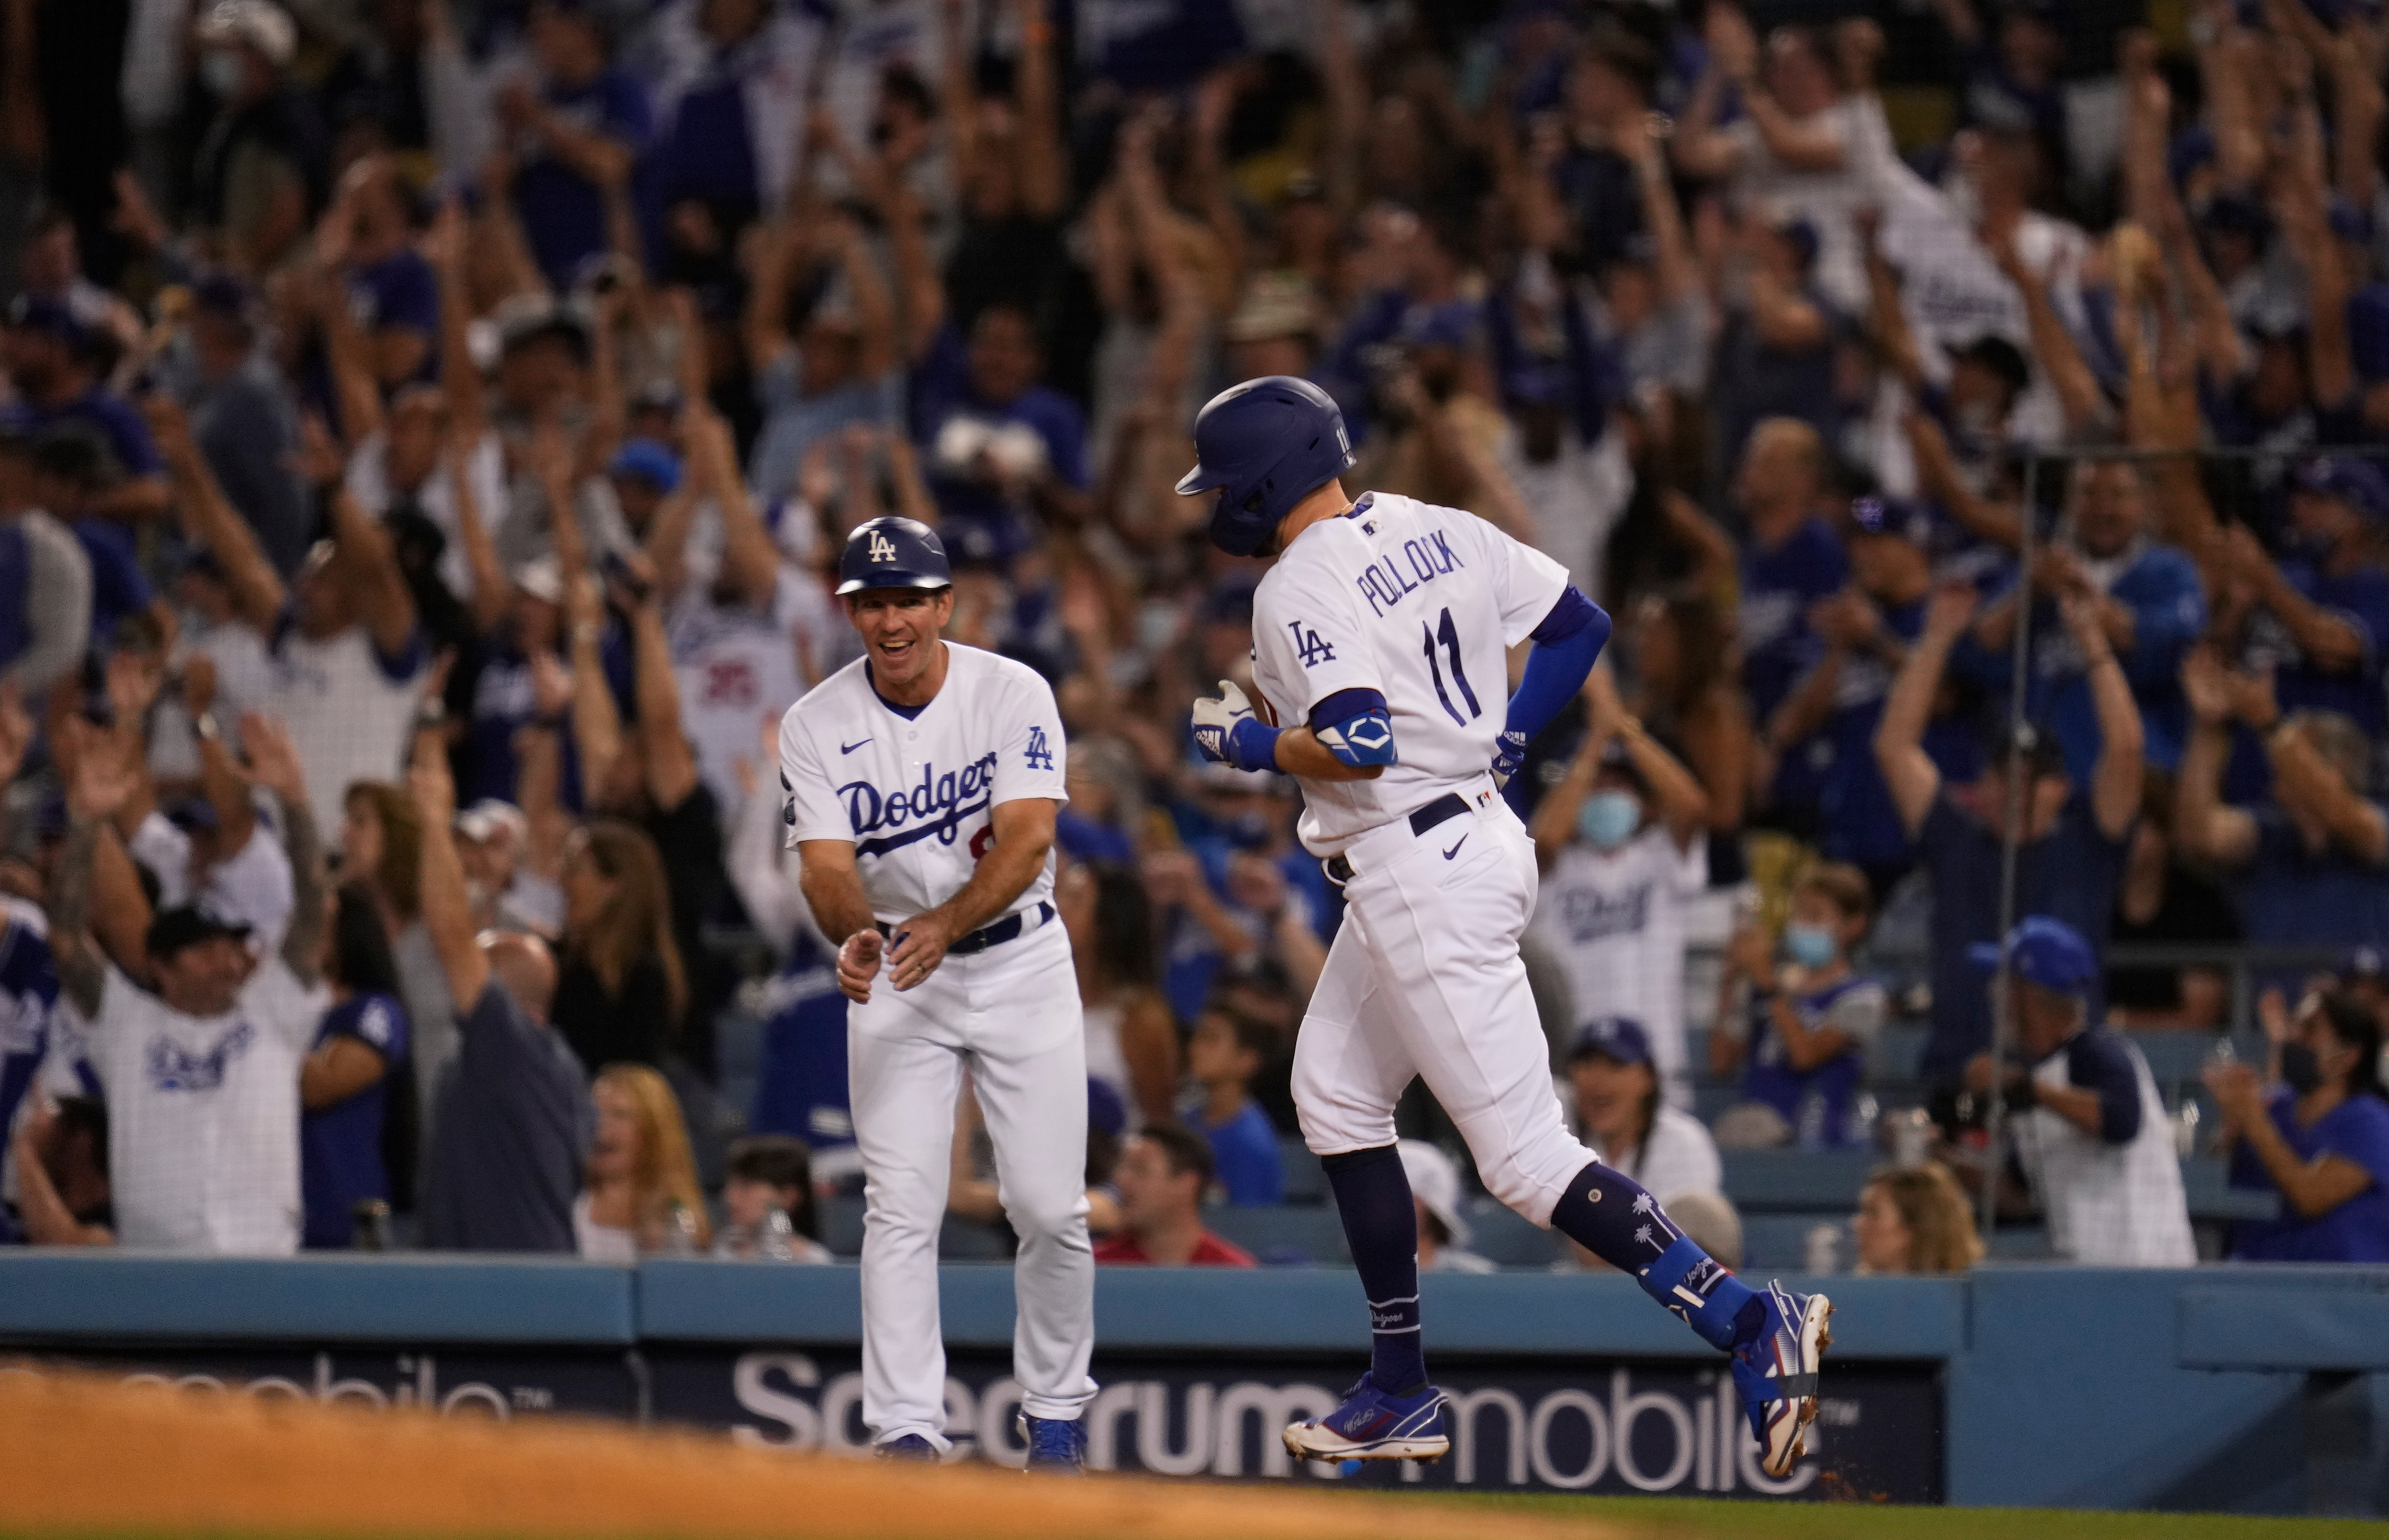 Oct 2, 2021; Los Angeles, California, USA; Los Angeles Dodgers left fielder AJ Pollock (11) rounds the bases after hitting a two run home run against the Milwaukee Brewers in the fourth inning at Dodger Stadium. Los Angeles Dodgers first base coach Clayton McCullough (86) claps as Pollock approaches first base. Mandatory Credit: Robert Hanashiro-USA TODAY Sports